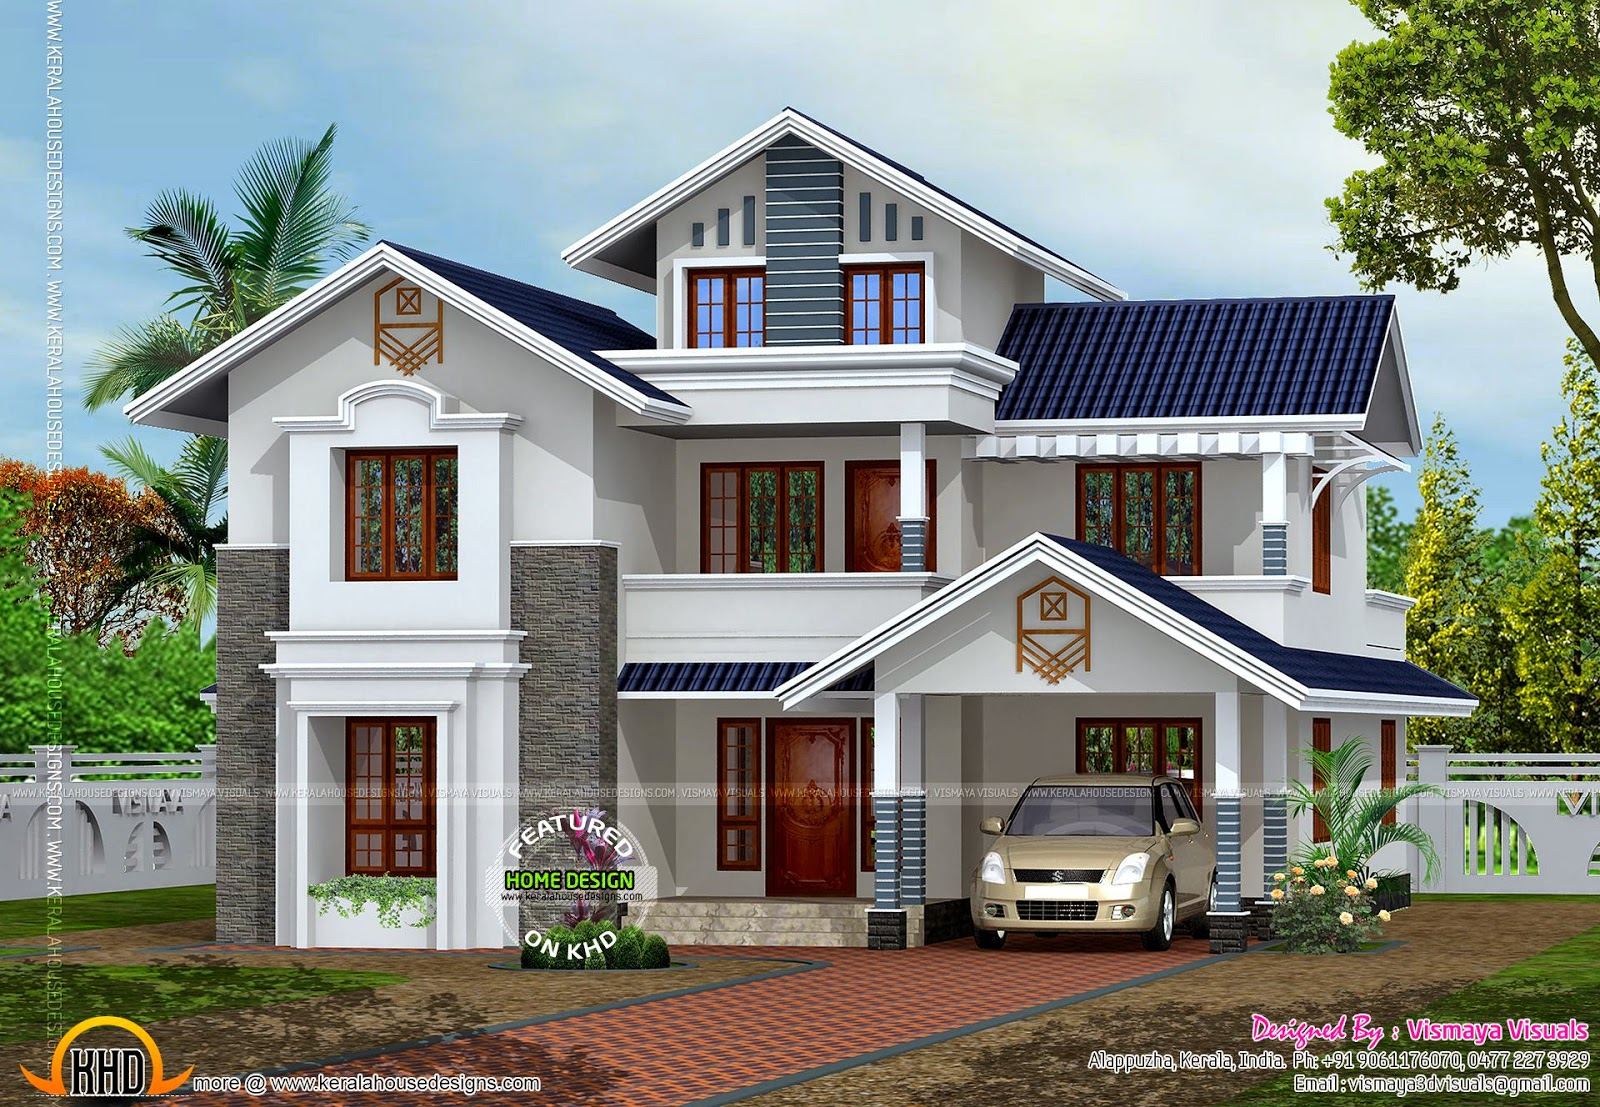 House plan of 249 square yards kerala home design and 200 yards house design